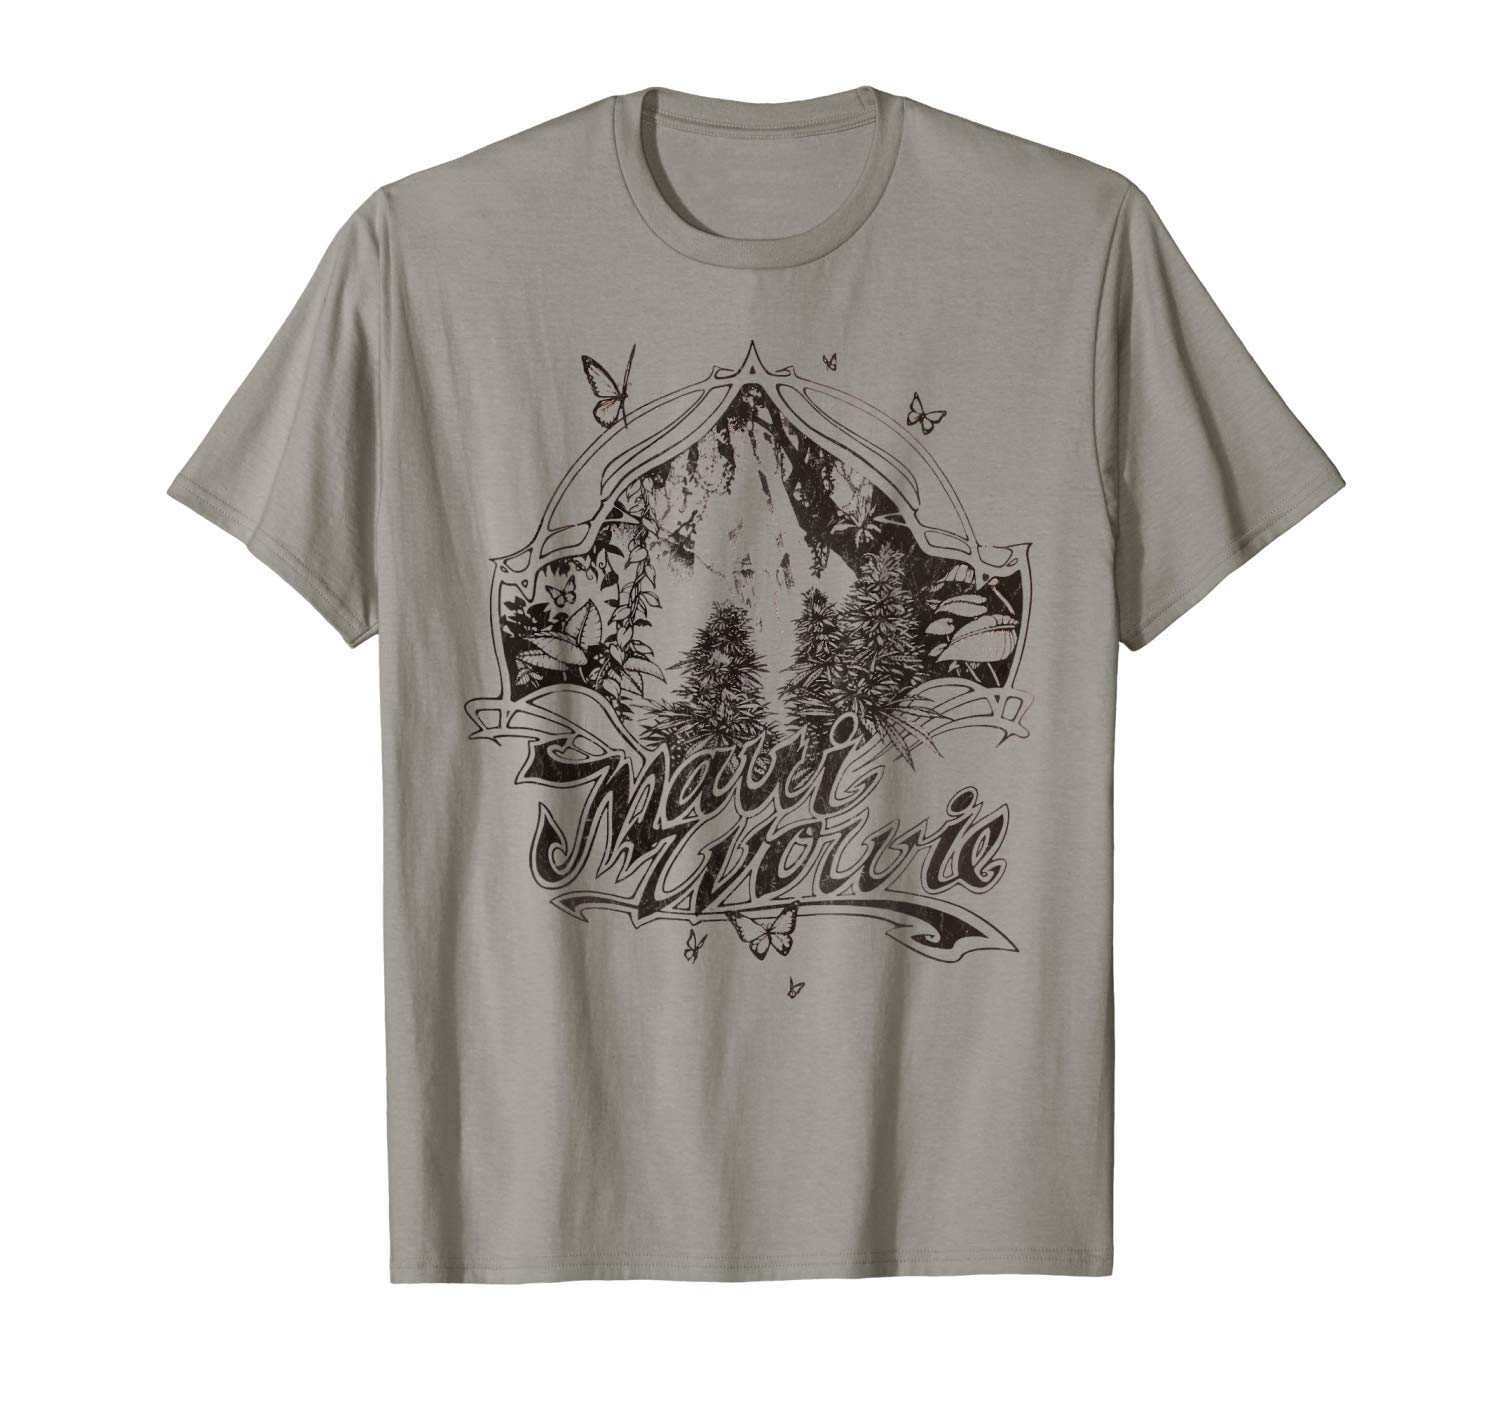 An image of the slate colored Maui Wowie Blackline Vintage Cannabis T-shirt from Ganja Outpost